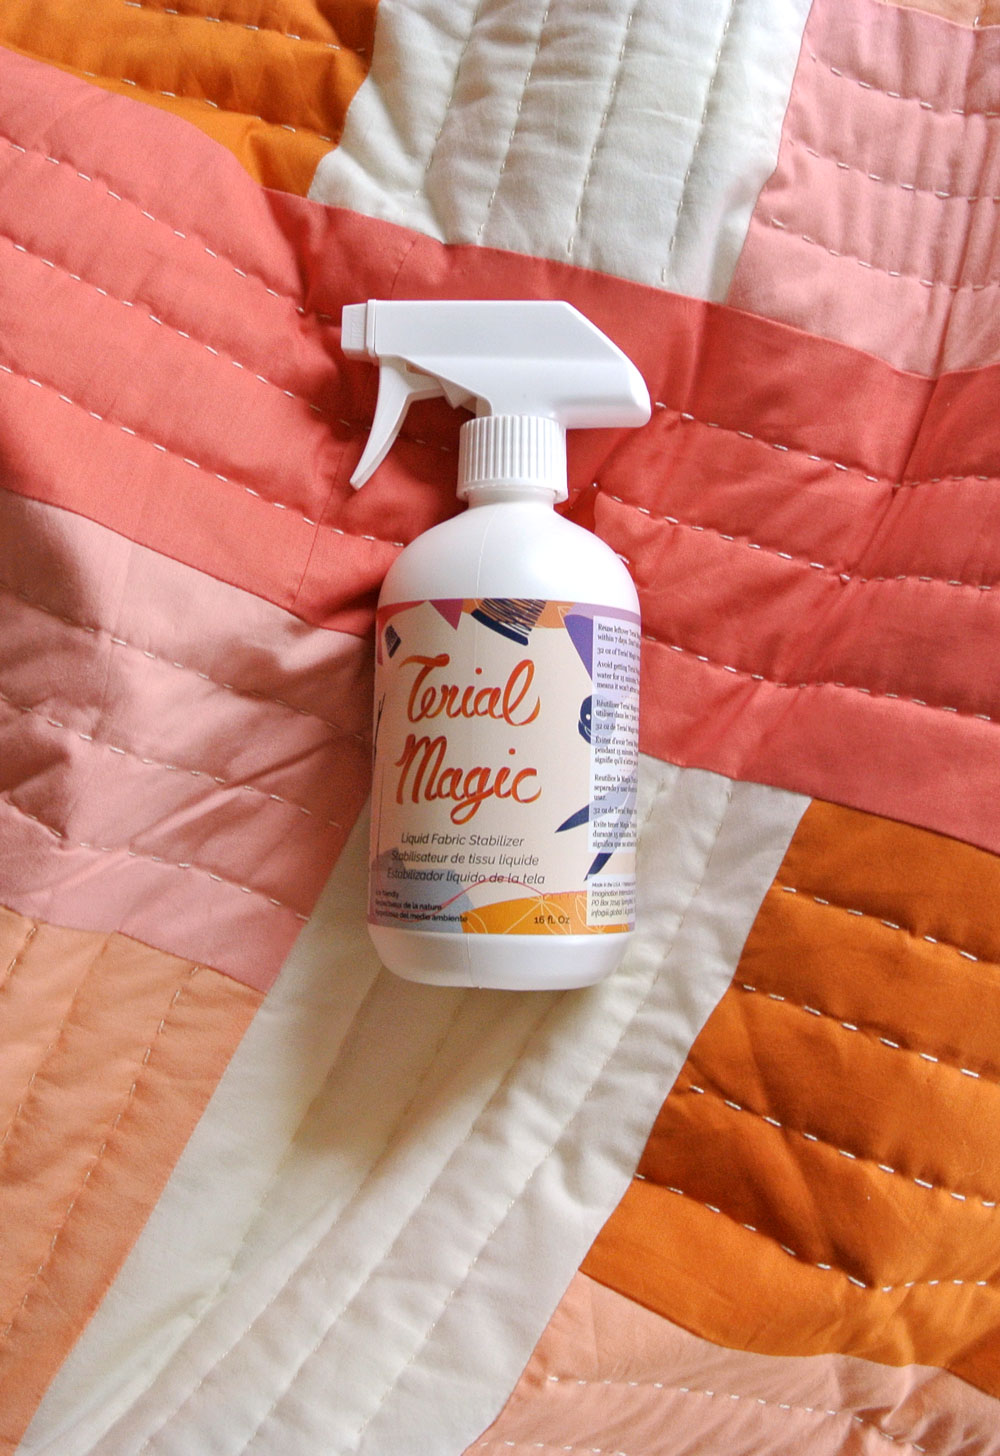 Terial Magic Stabilizing Spray and free downloadable sewing labels. | Suzy Quilts https://suzyquilts.com/terial-magic-your-new-favorite-fabric-stabilizer